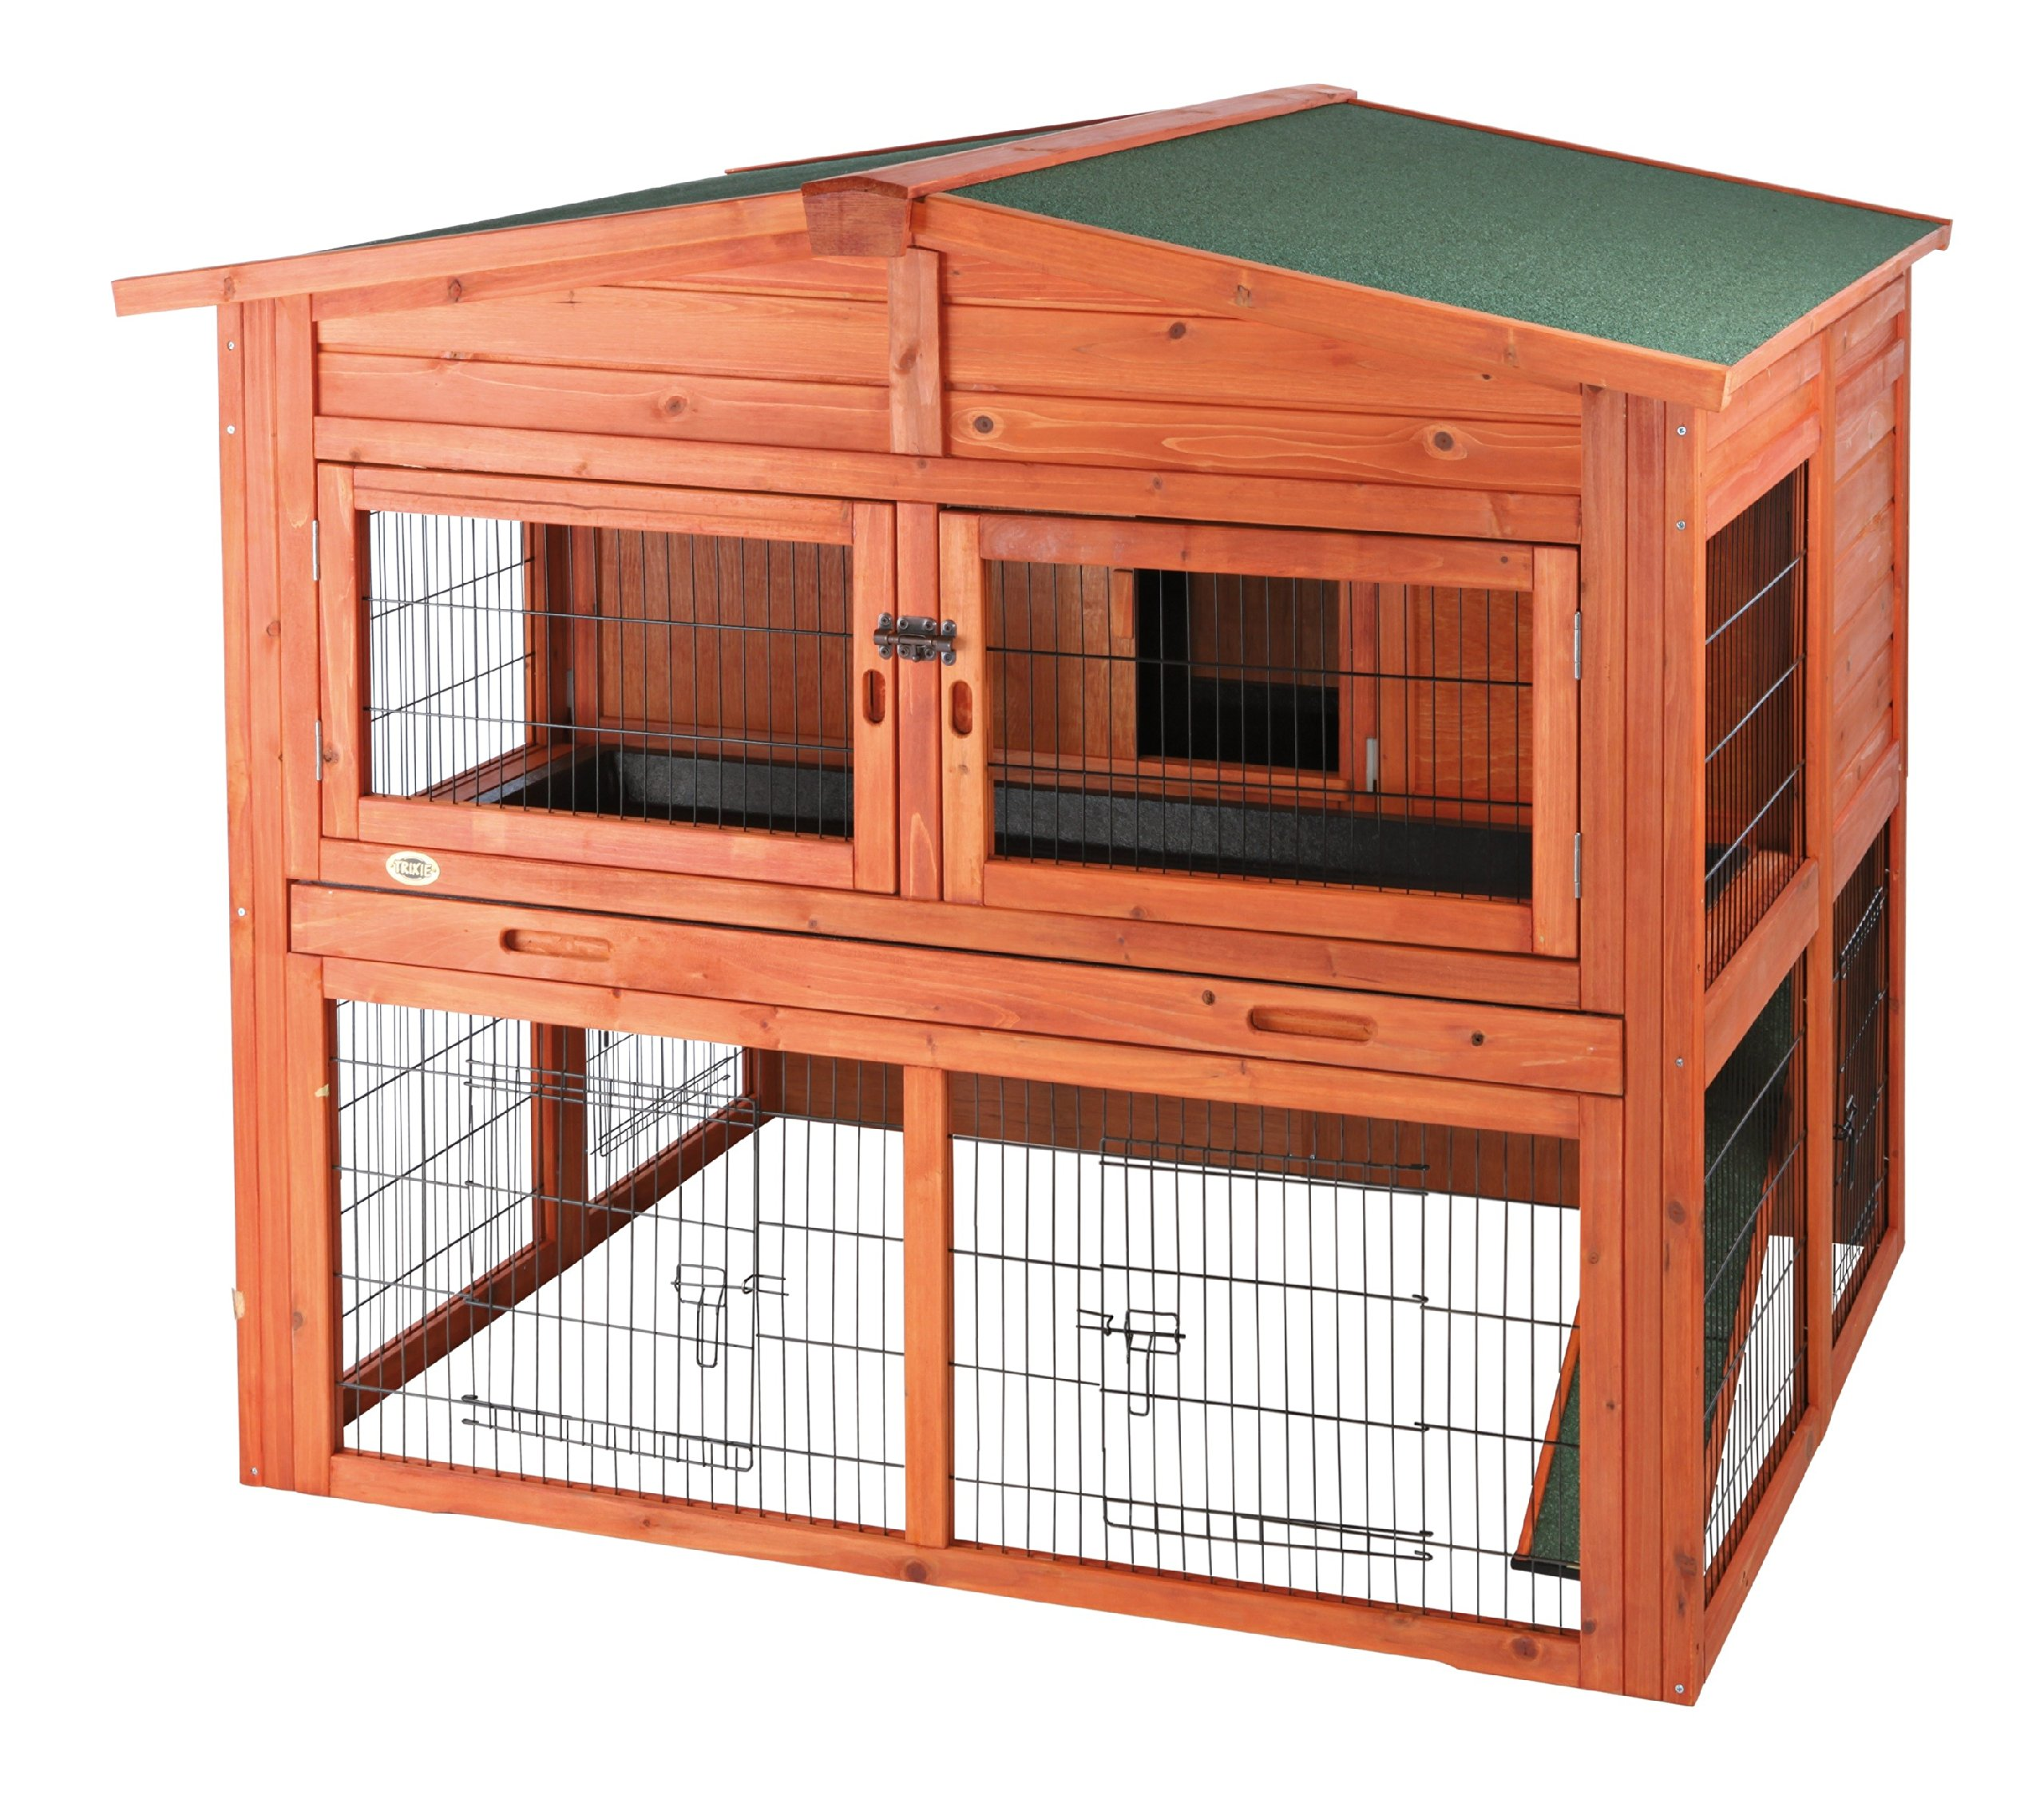 TRIXIE Pet Products Rabbit Hutch with Attic (XL), 53 x 44 x 45.25 inches